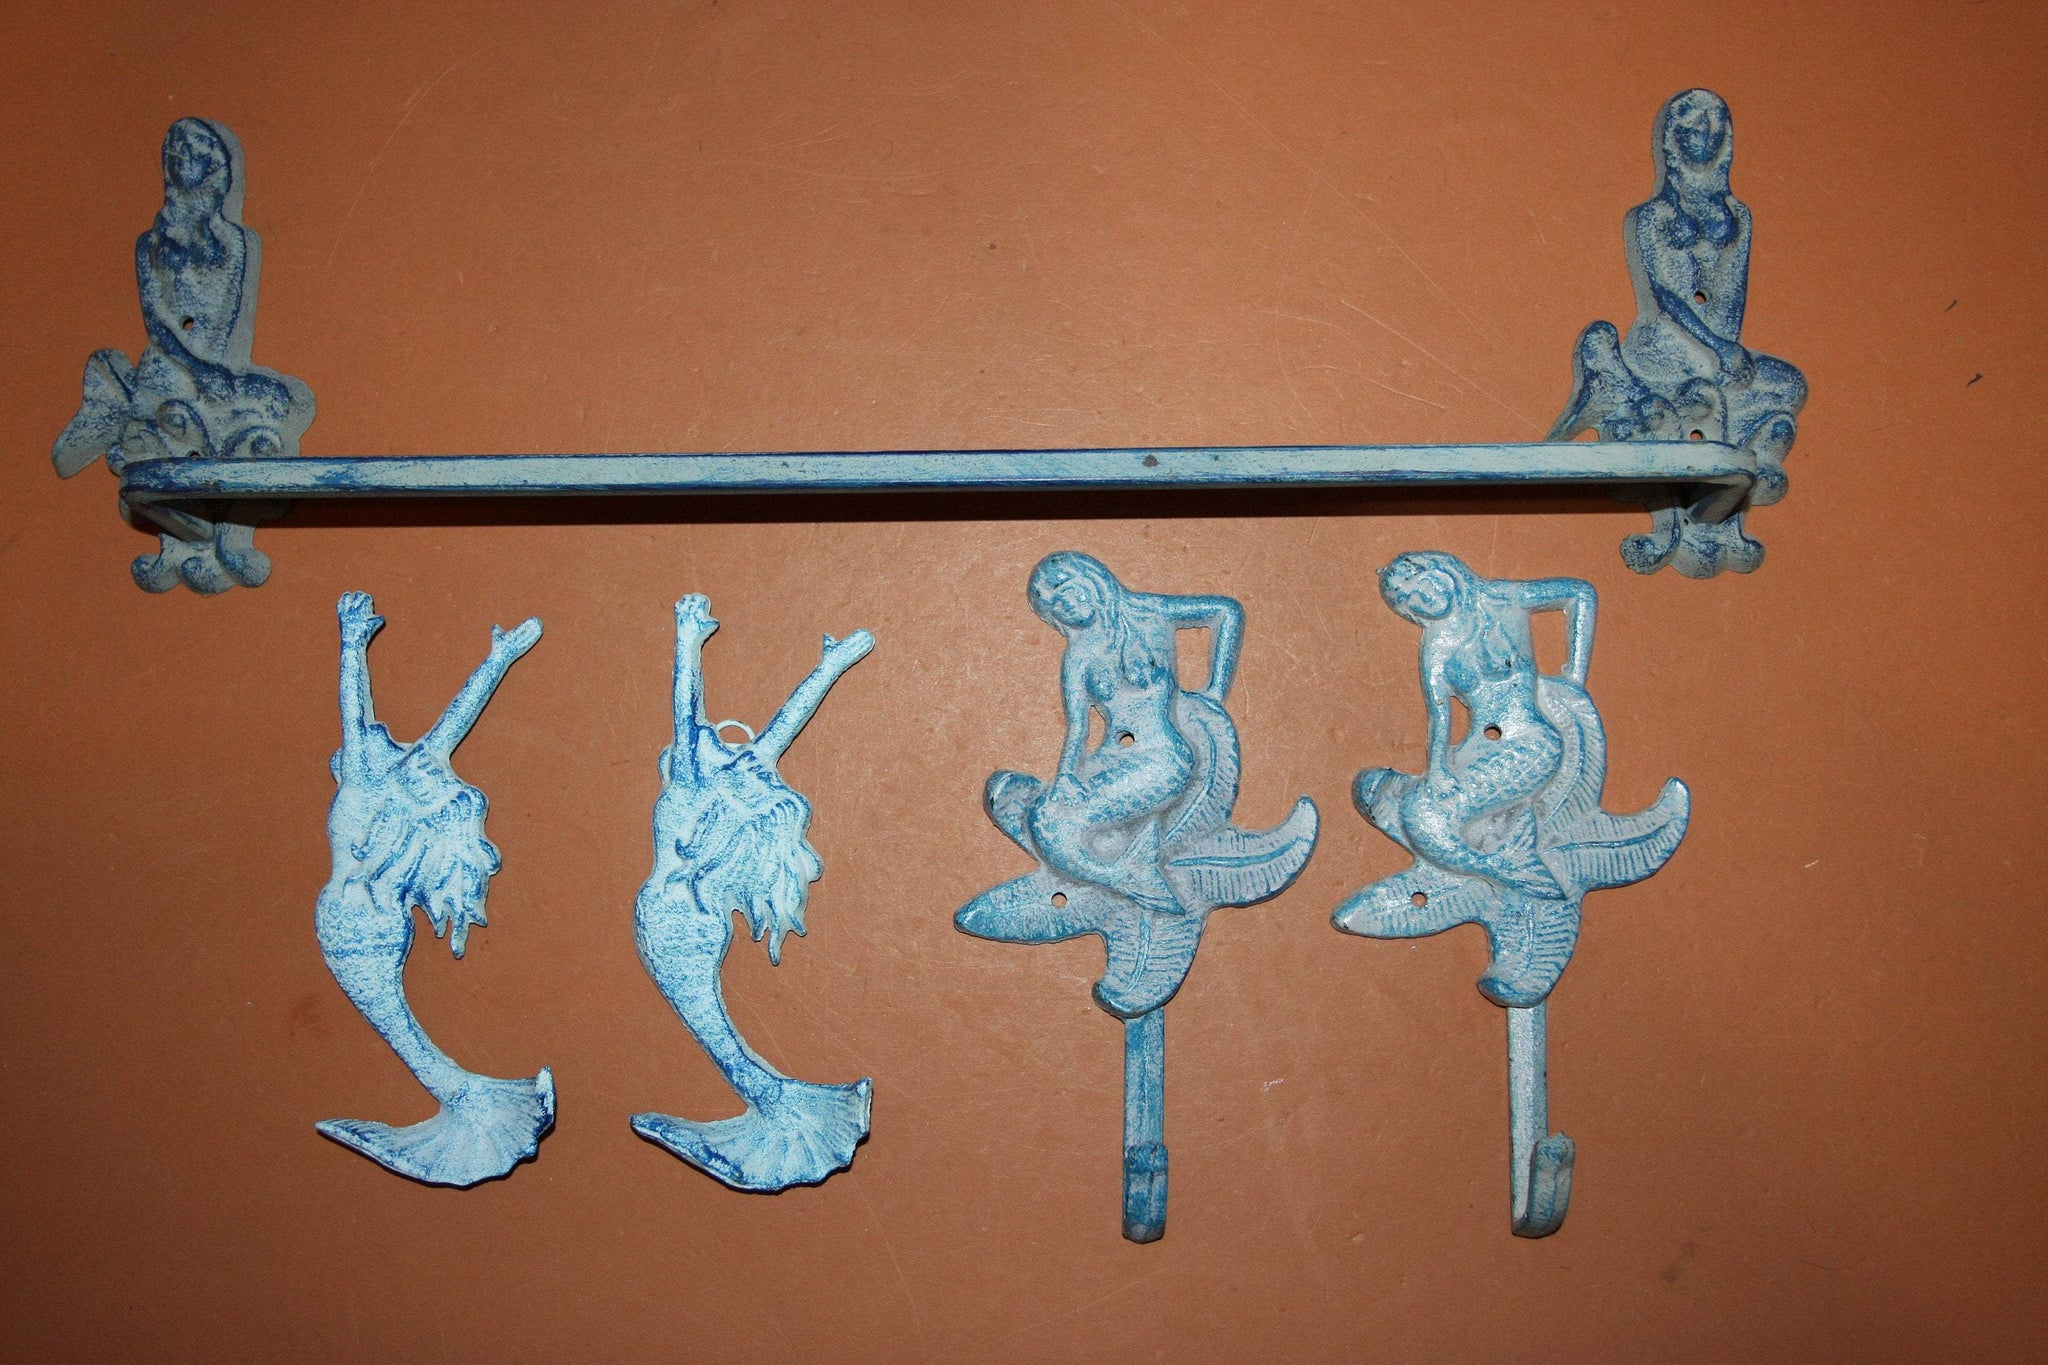 5) Antique Style Mermaid Bath Decor, Aqua color cast iron Mermaid Towel Bar Rack Mermaid Towel Bathrobe Wall Hooks, Set of 5,  MM